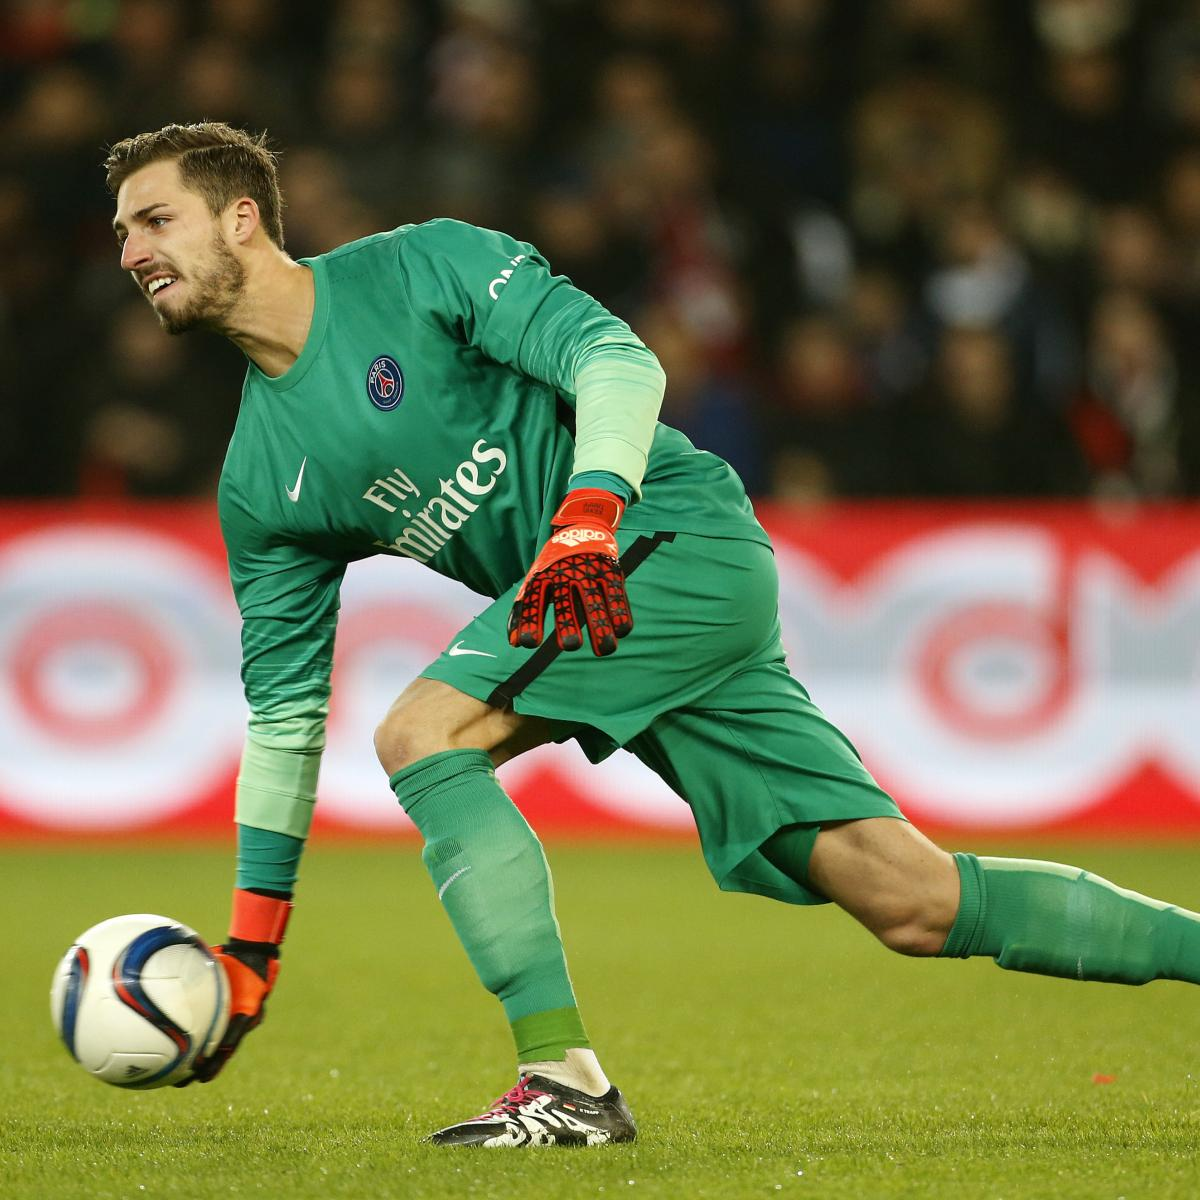 PSG Goalkeeper Kevin Trapp Must Be Questioned After Latest